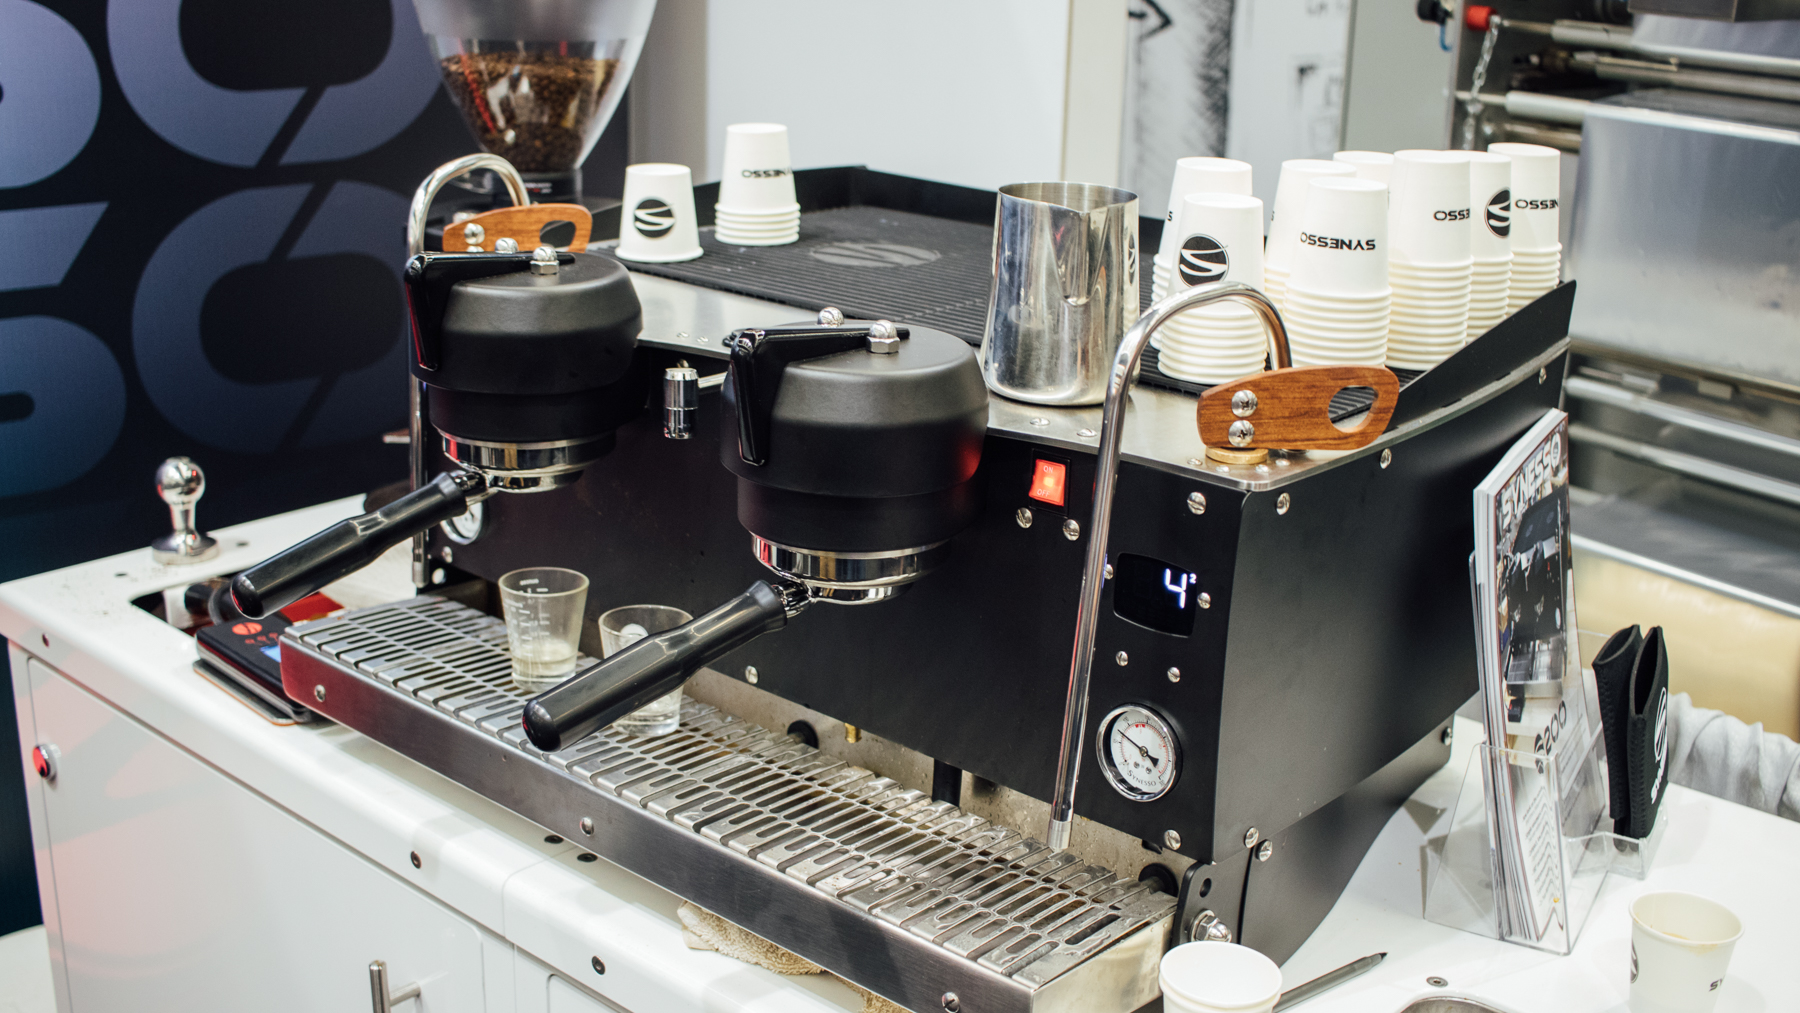 A black Synesso S 200 on a white cabinet at the 2018 Coffee Expo.